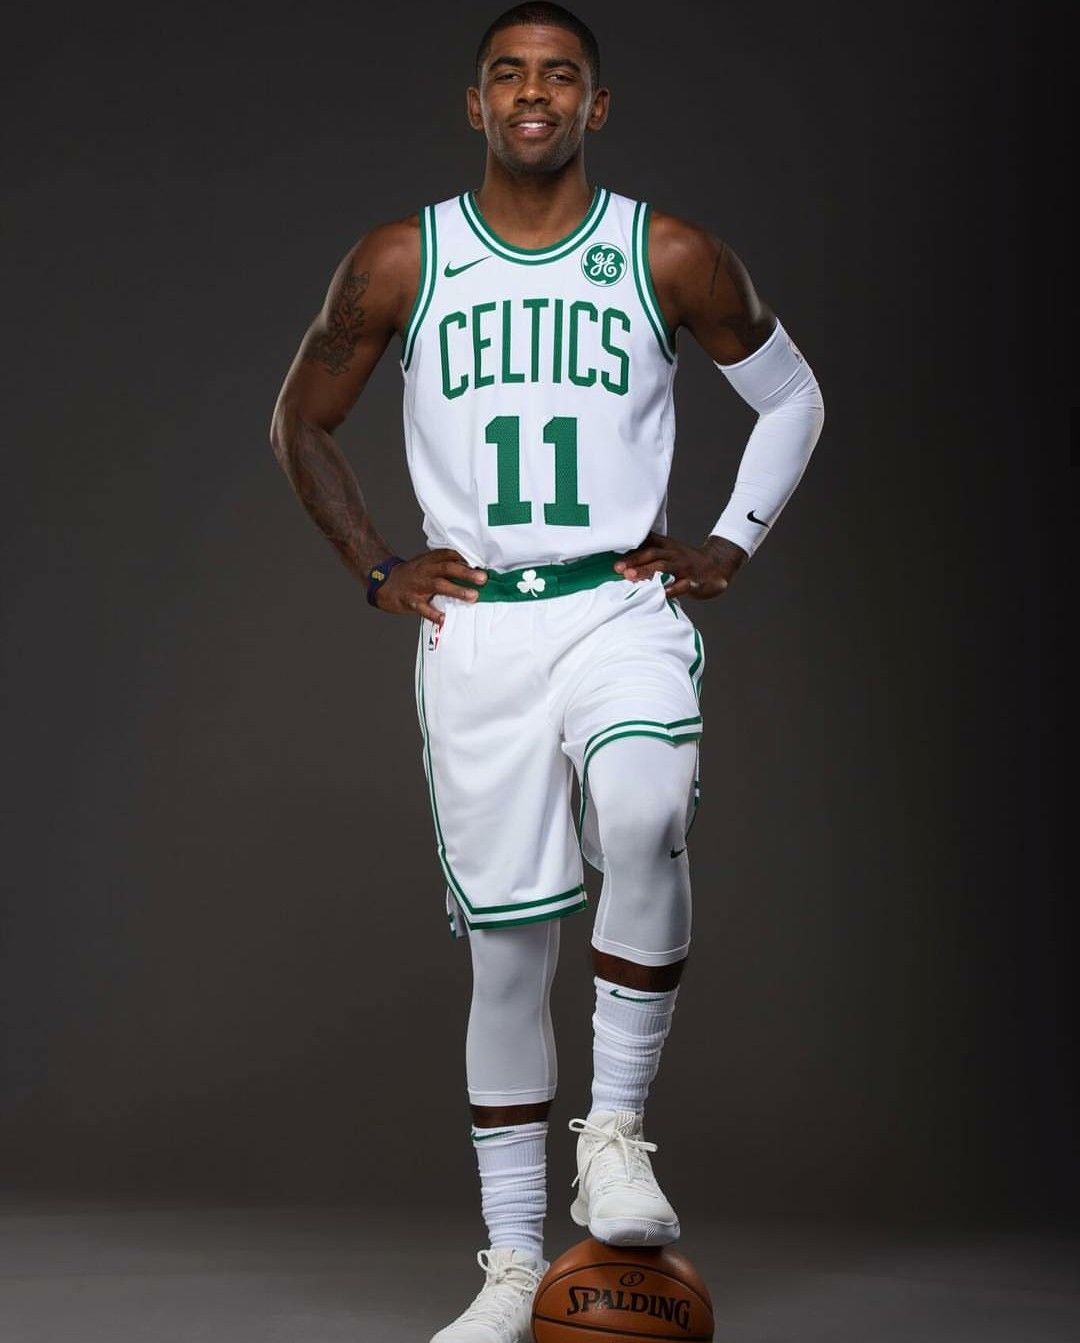 8283010b167 Kyrie Irving in the Boston Celtics Jersey | Poster | Kyrie irving ...